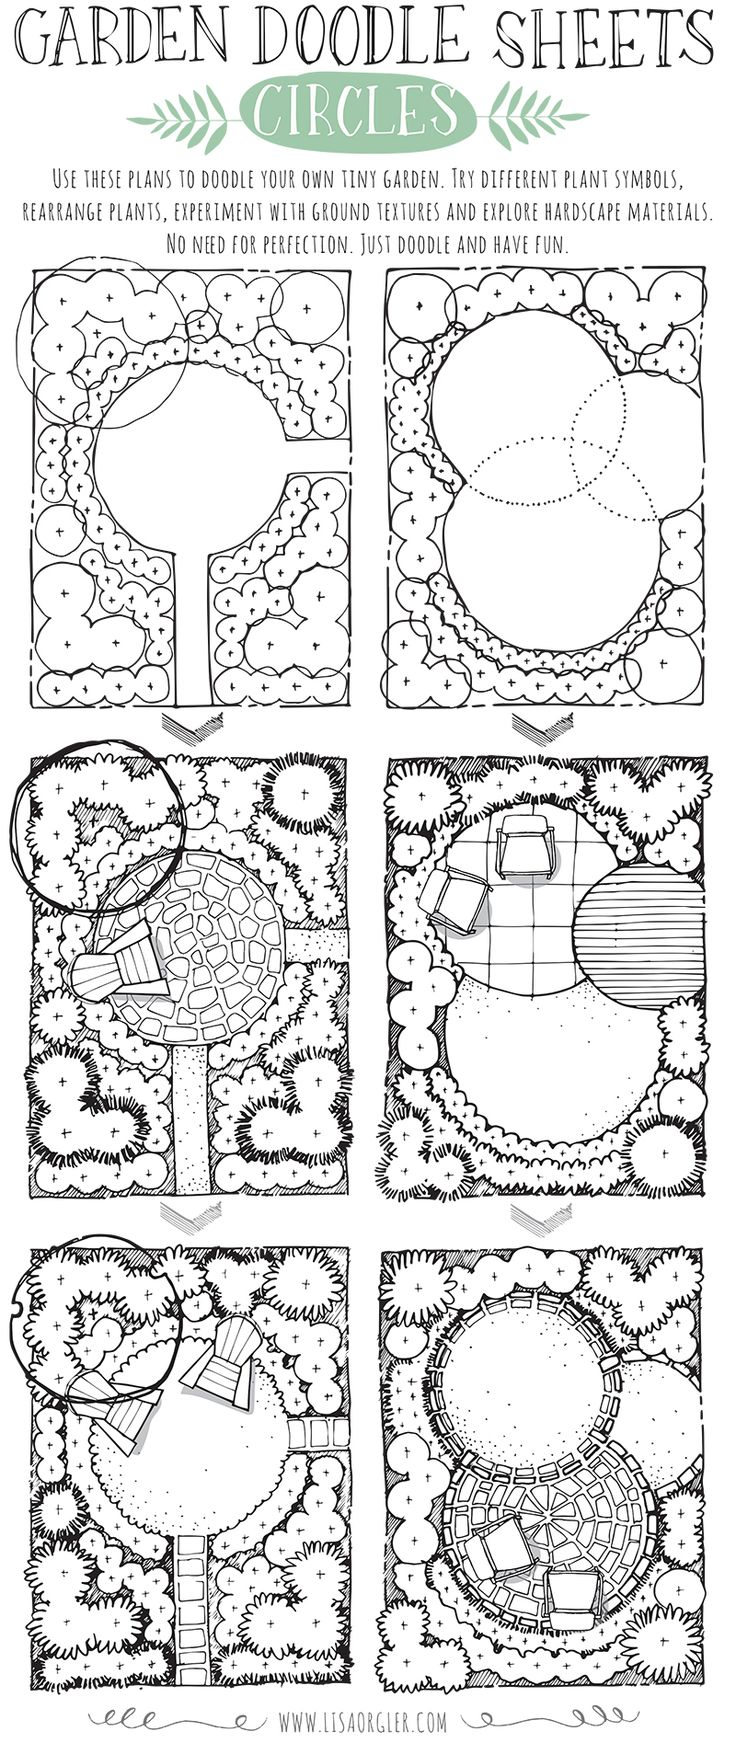 If you have the opportunity to enjoy a spring break, take time to relax and  doodle some garden ideas.Grab a pen and explore different ways you might  design the spaces below. Try different plant symbols, ground textures and  hardscape materials.Both plans incorporate the circle as the main  structure. How would you create a tiny garden with a circle theme? Click on  the image below to download a .pdf of the plans to doodle yourself.  For additional garden doodle sheets, please click…